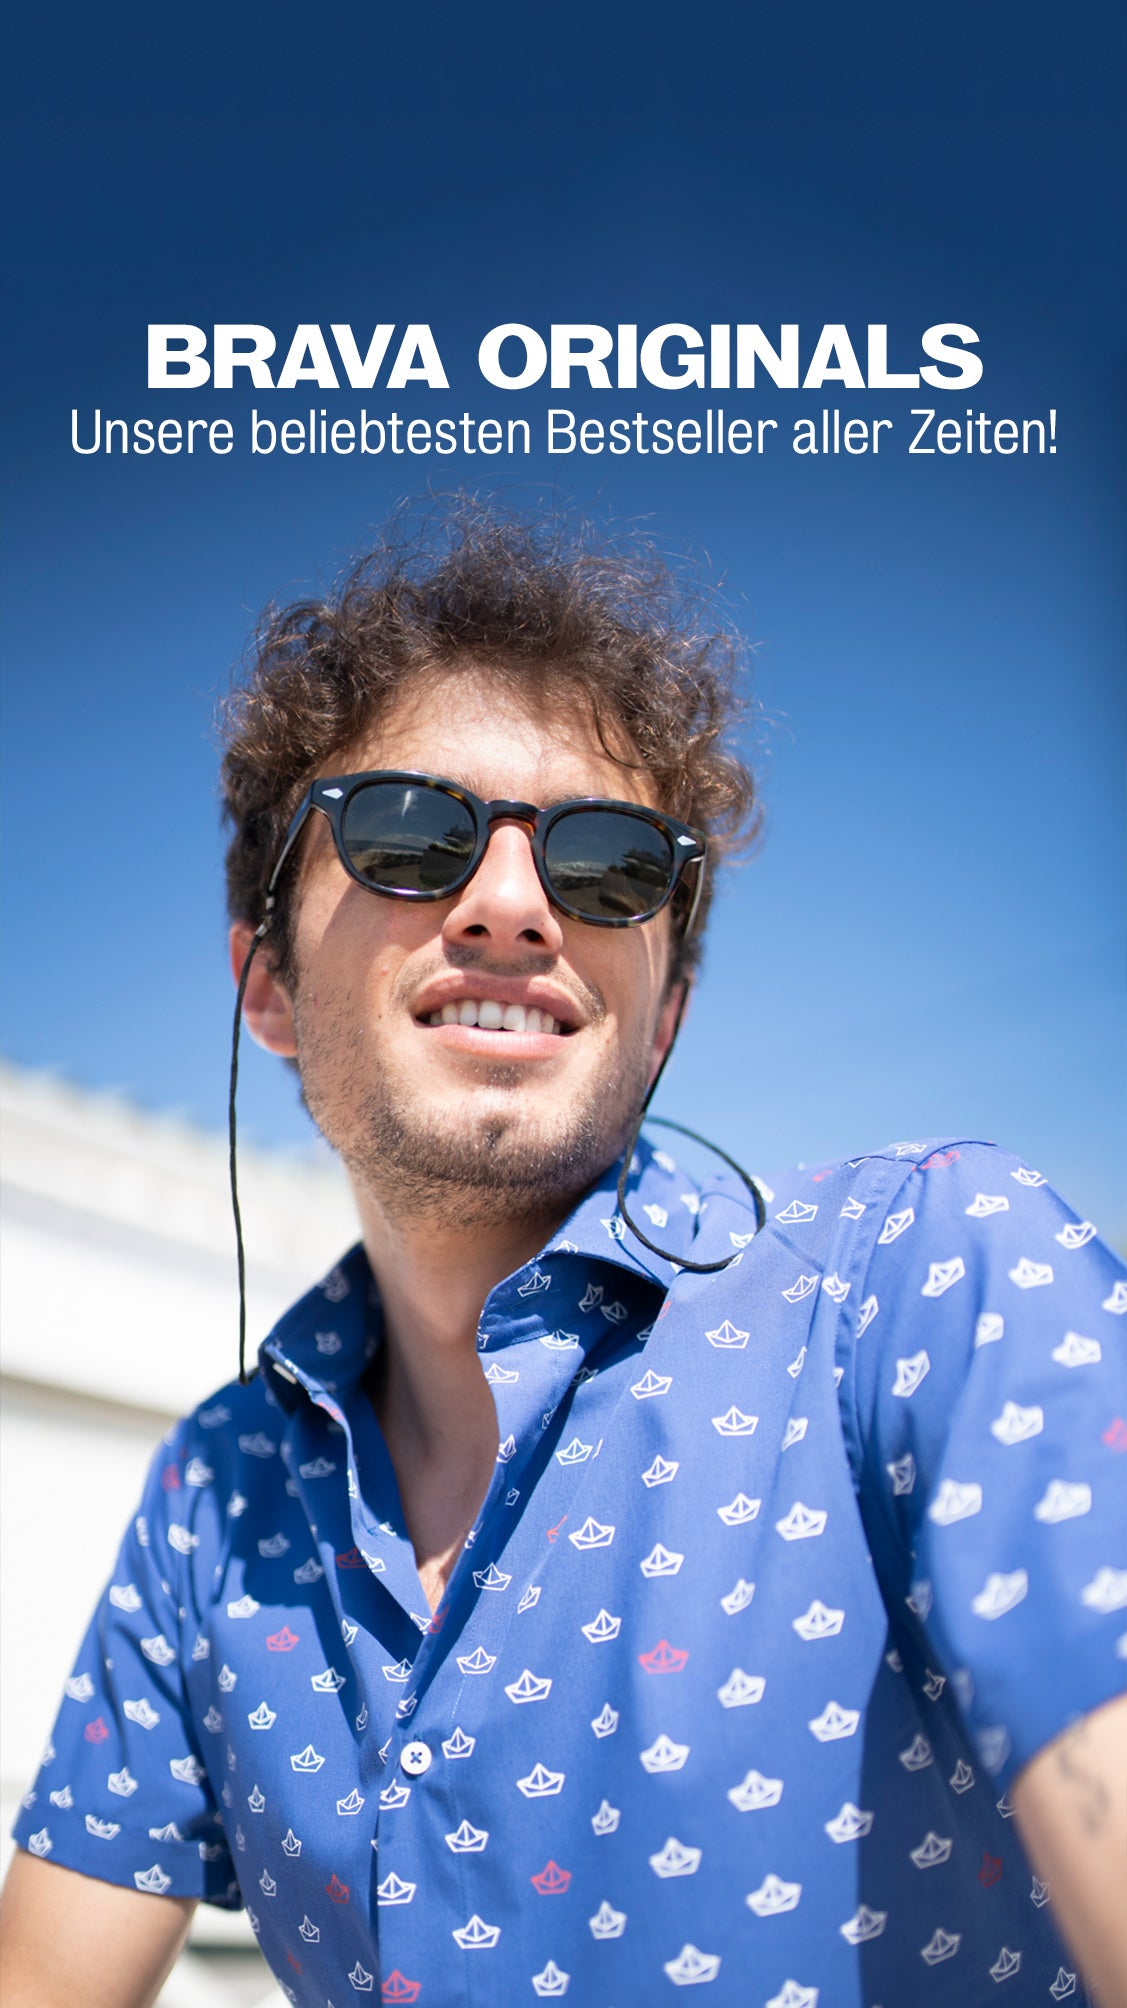 Man with sunglasses and Brava paper boat shirt